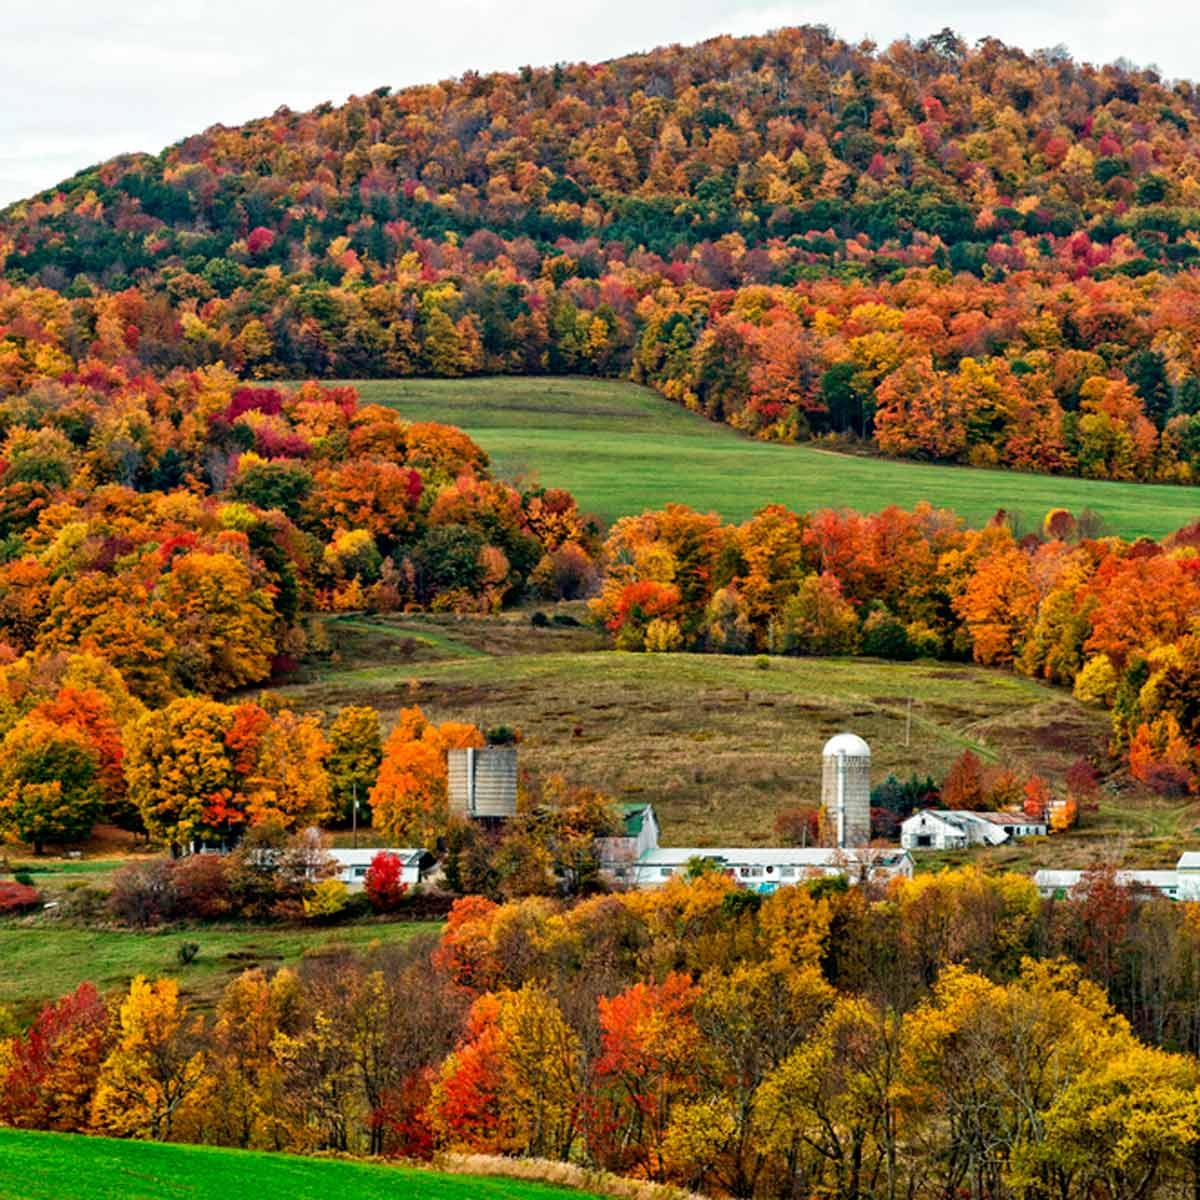 15 Best Places to See Fall Colors in the U.S.